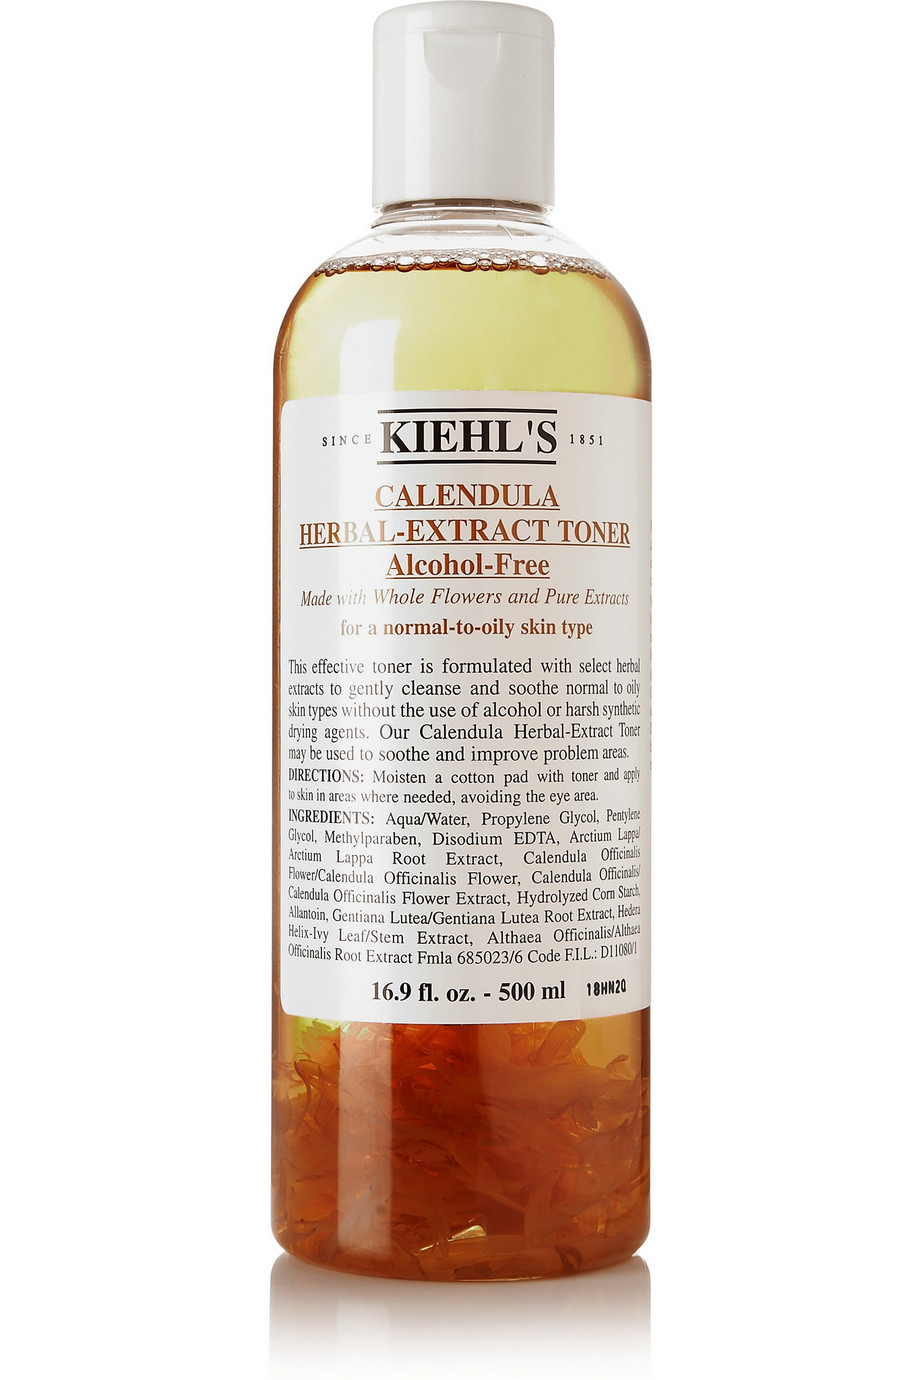 Calendula Herbal-Extract Alcohol-Free Toner, 500ml, by Kiehl's Since 1851